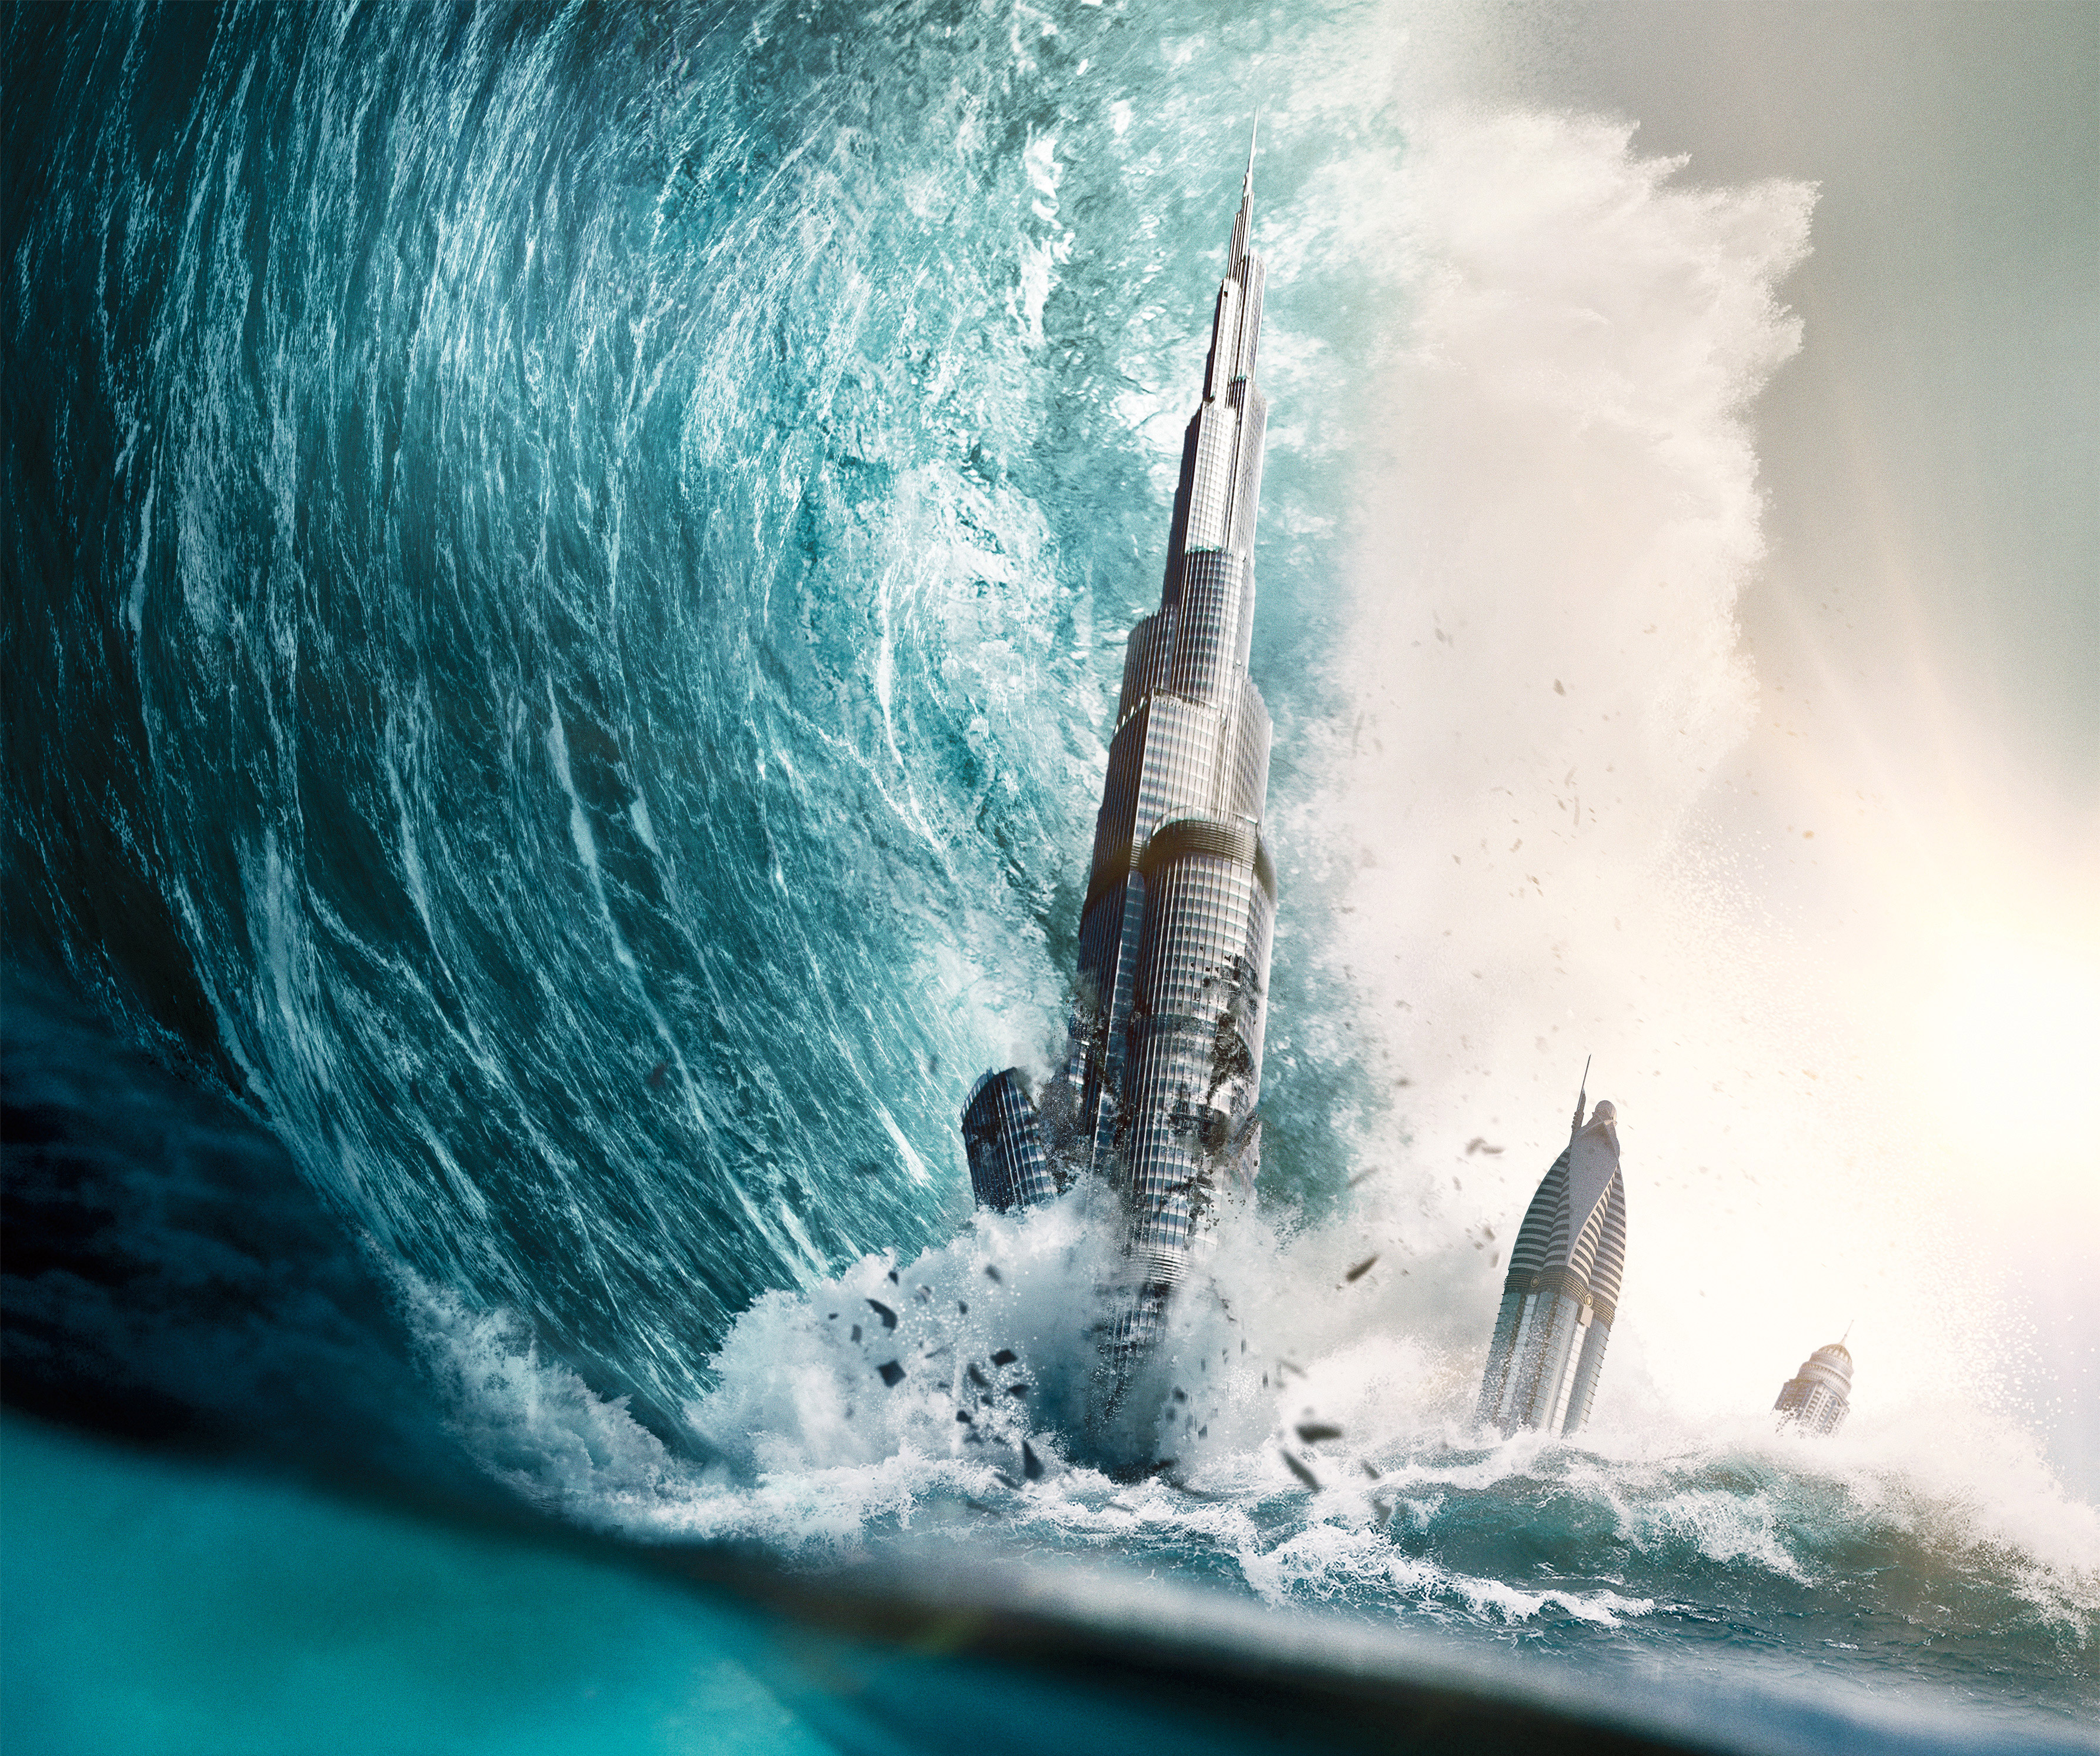 Geostorm 2017 Movie 4k, HD Movies, 4k Wallpapers, Images